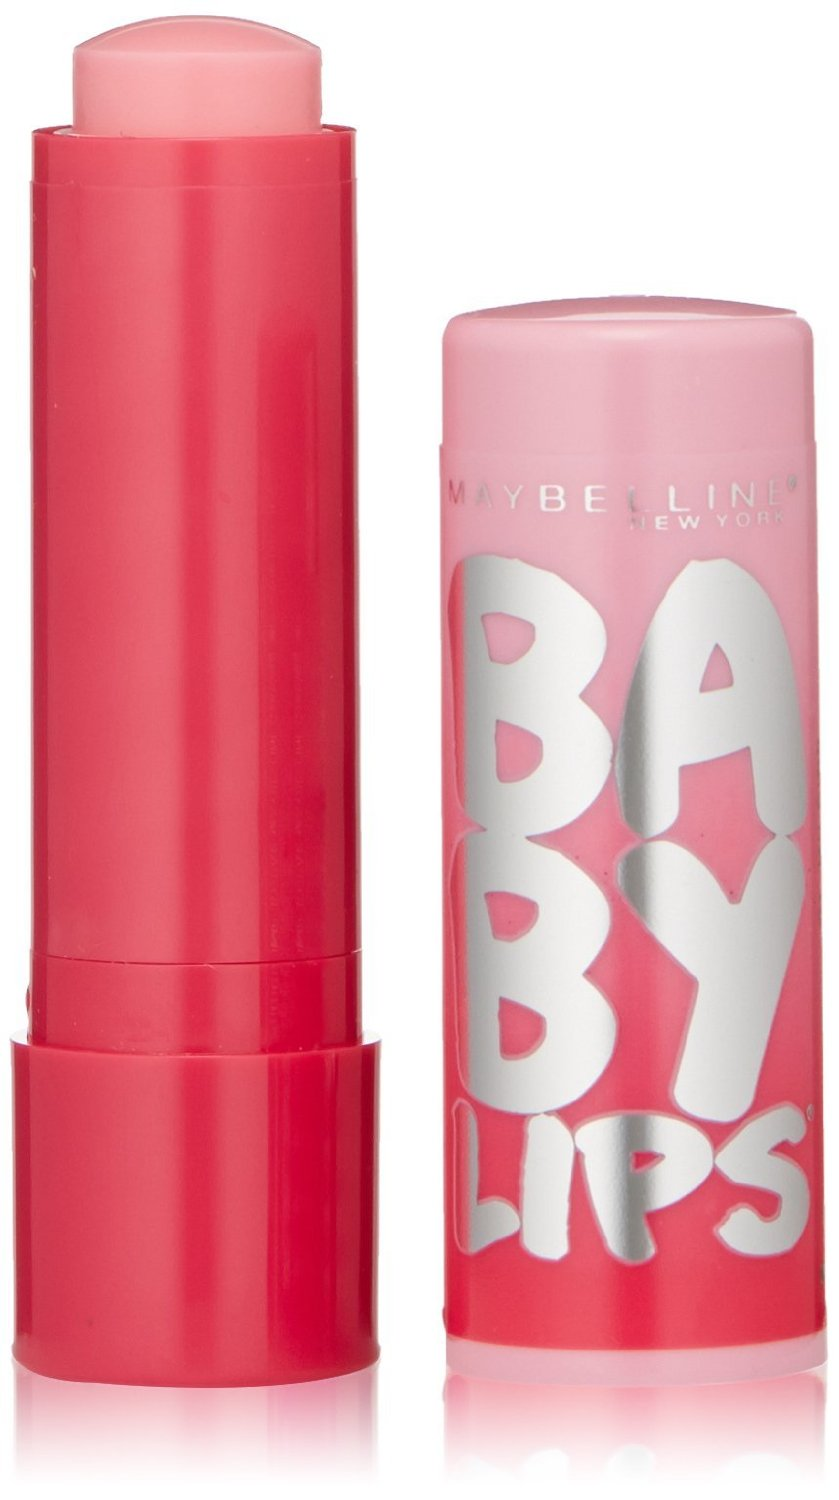 This New Color Changing Lip Balm Can Be Found At The